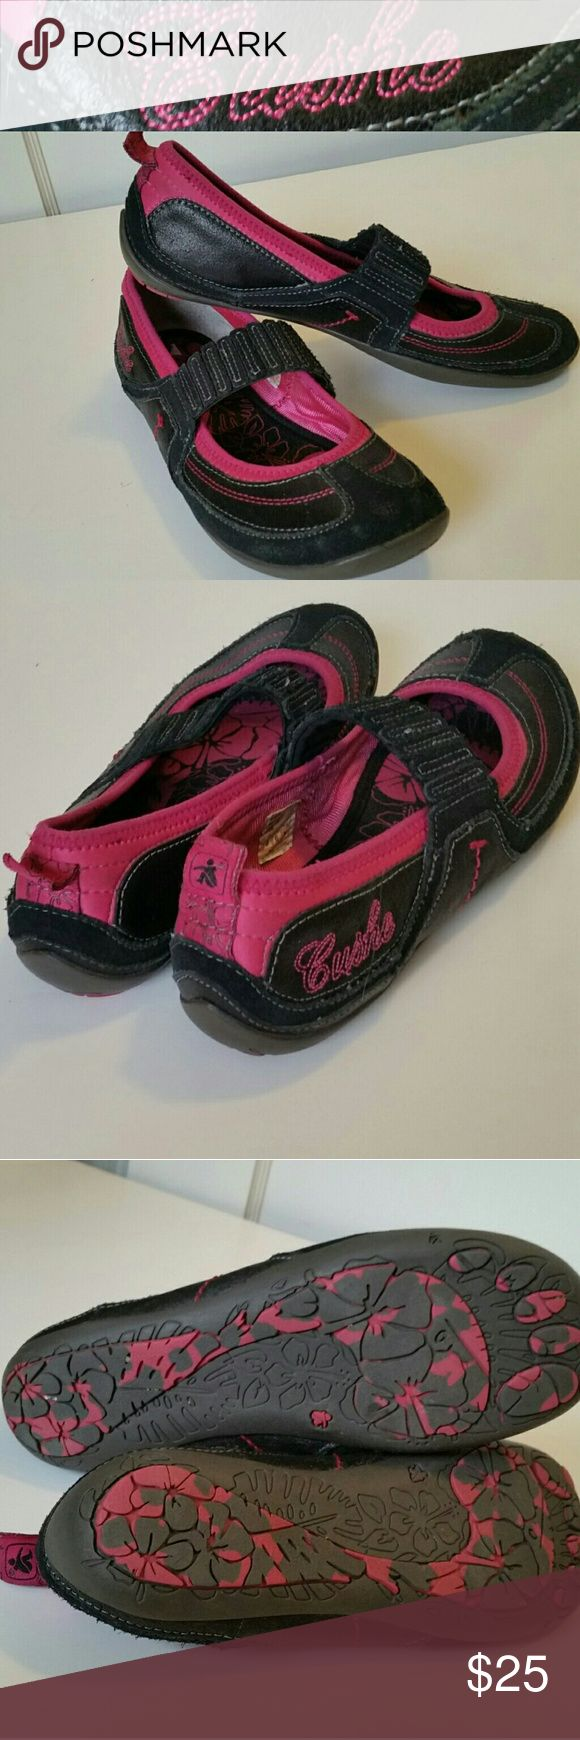 Cushe Slip On Walking Shoe Excellent condition pink and black memory foam sole walking shoe, Mary Jane style with stretchy strap. Cushe Shoes Flats & Loafers